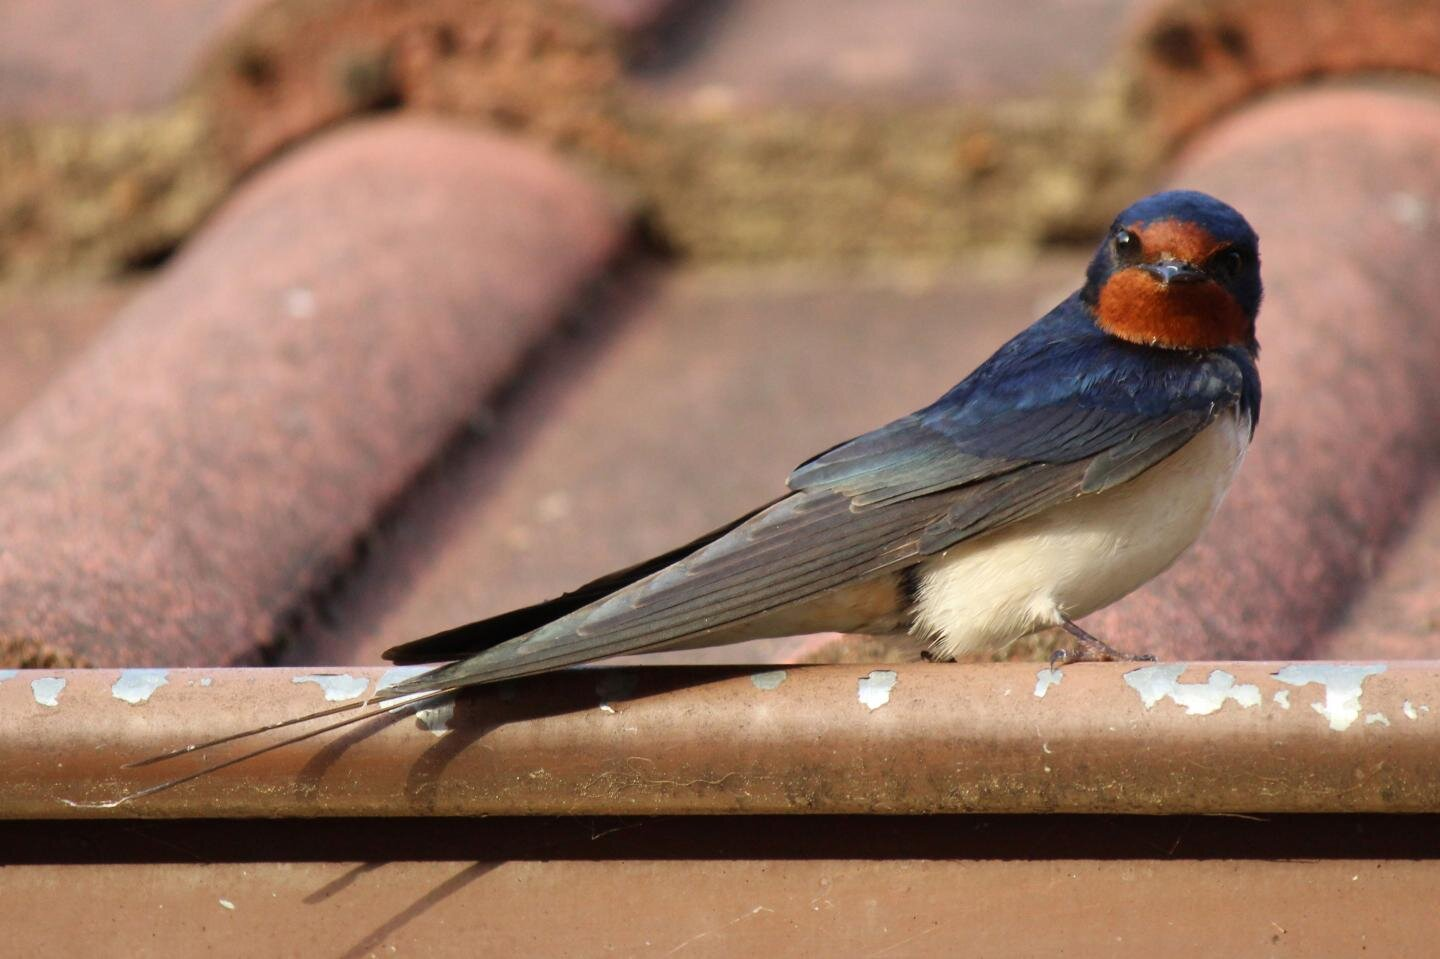 resident parasites influence appearance evolution of barn swallows barn swallows